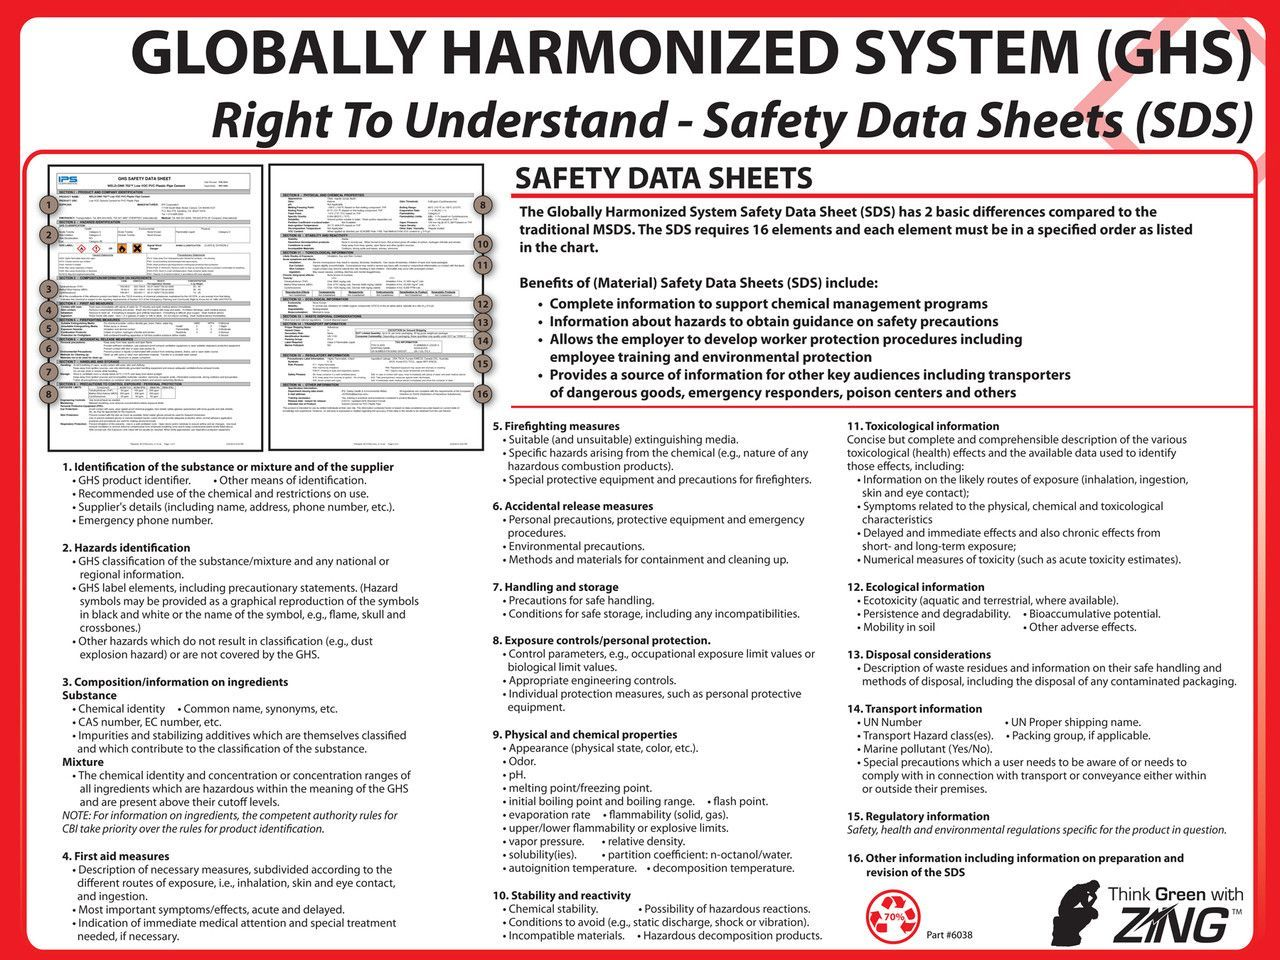 zing 6038 eco ghs poster safety data sheet format 18hx24w products. Black Bedroom Furniture Sets. Home Design Ideas